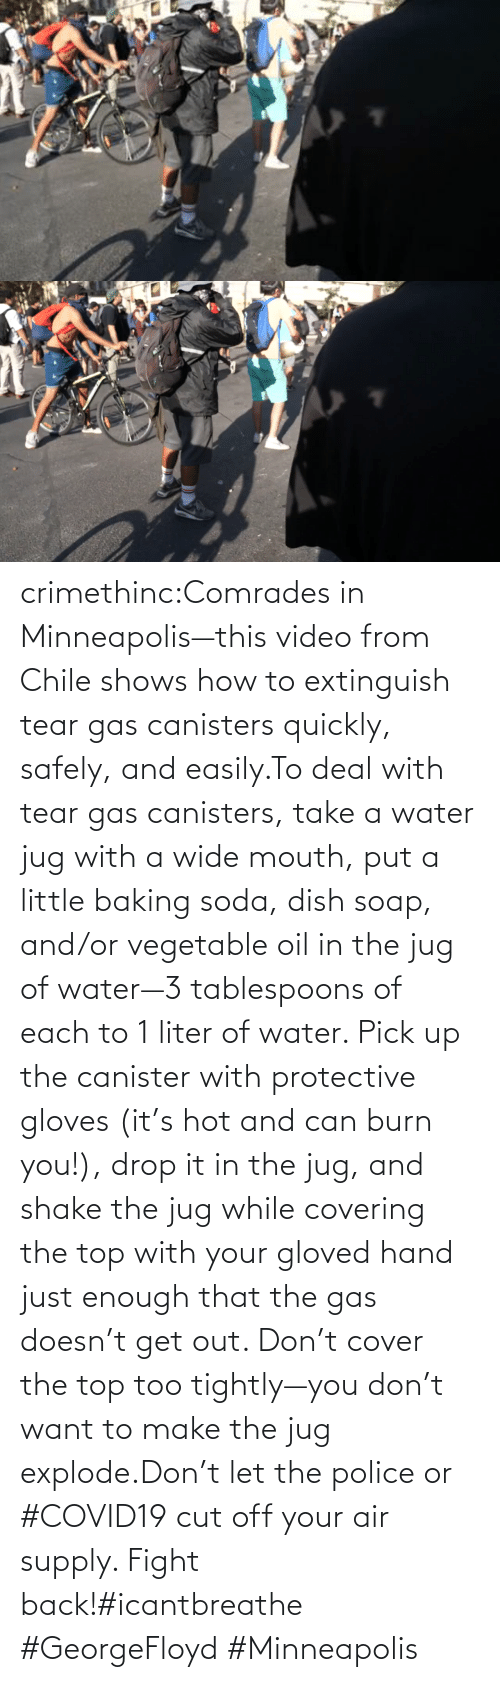 Make The: crimethinc:Comrades in Minneapolis—this video from Chile shows how to extinguish tear gas canisters quickly, safely, and easily.To deal with tear gas canisters, take a water jug with a wide mouth, put a little baking soda, dish soap, and/or vegetable oil in the jug of water—3 tablespoons of each to 1 liter of water. Pick up the canister with protective gloves (it's hot and can burn you!), drop it in the jug, and shake the jug while covering the top with your gloved hand just enough that the gas doesn't get out. Don't cover the top too tightly—you don't want to make the jug explode.Don't let the police or #COVID19 cut off your air supply. Fight back!#icantbreathe #GeorgeFloyd #Minneapolis